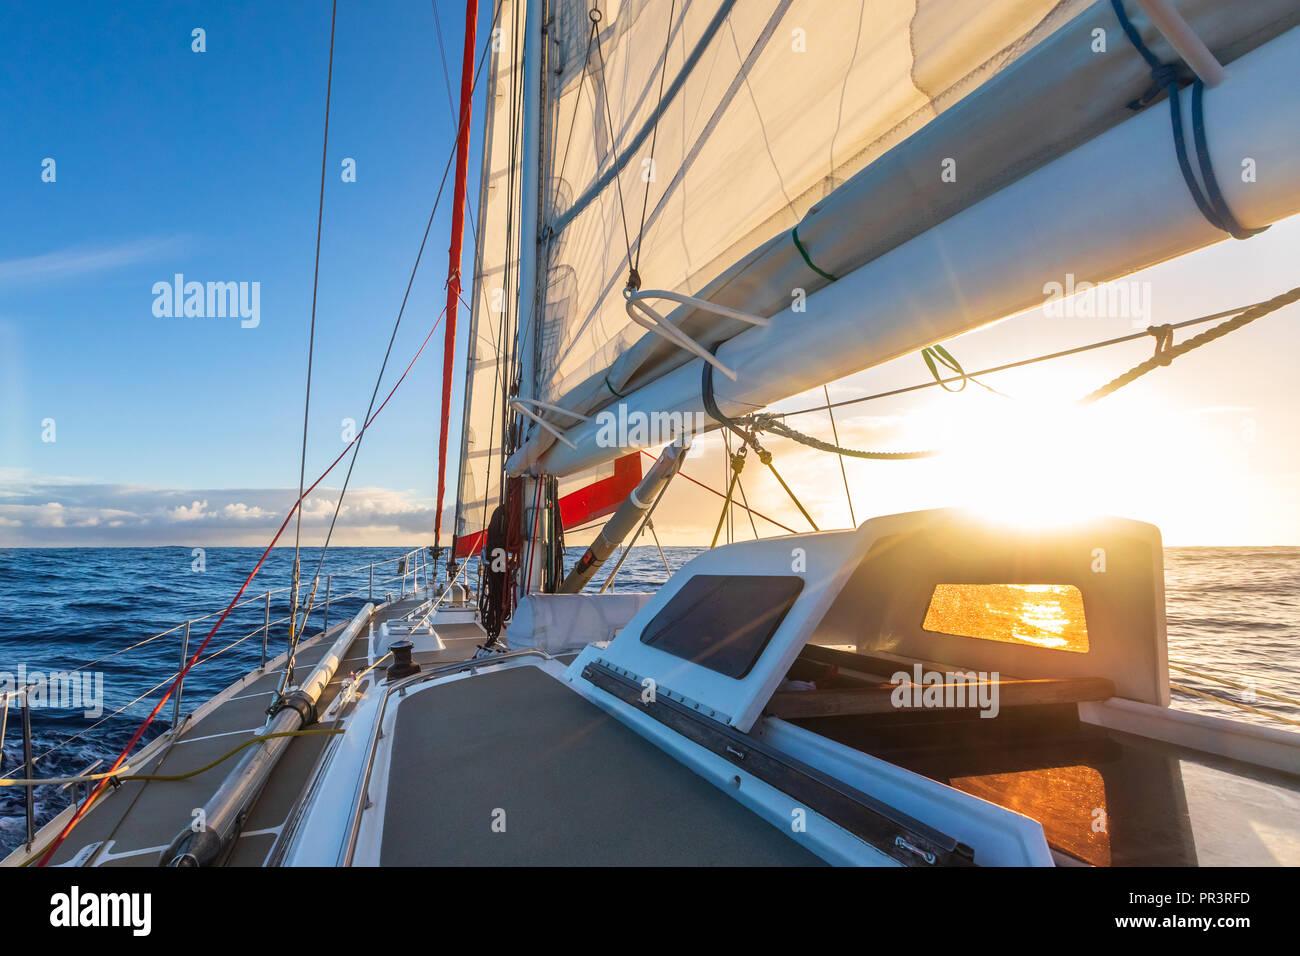 Sailing on sailboat yacht with beautiful sunset light clear blue sky and flat sea in drake passage, summer cruising, closeup of boat deck - Stock Image